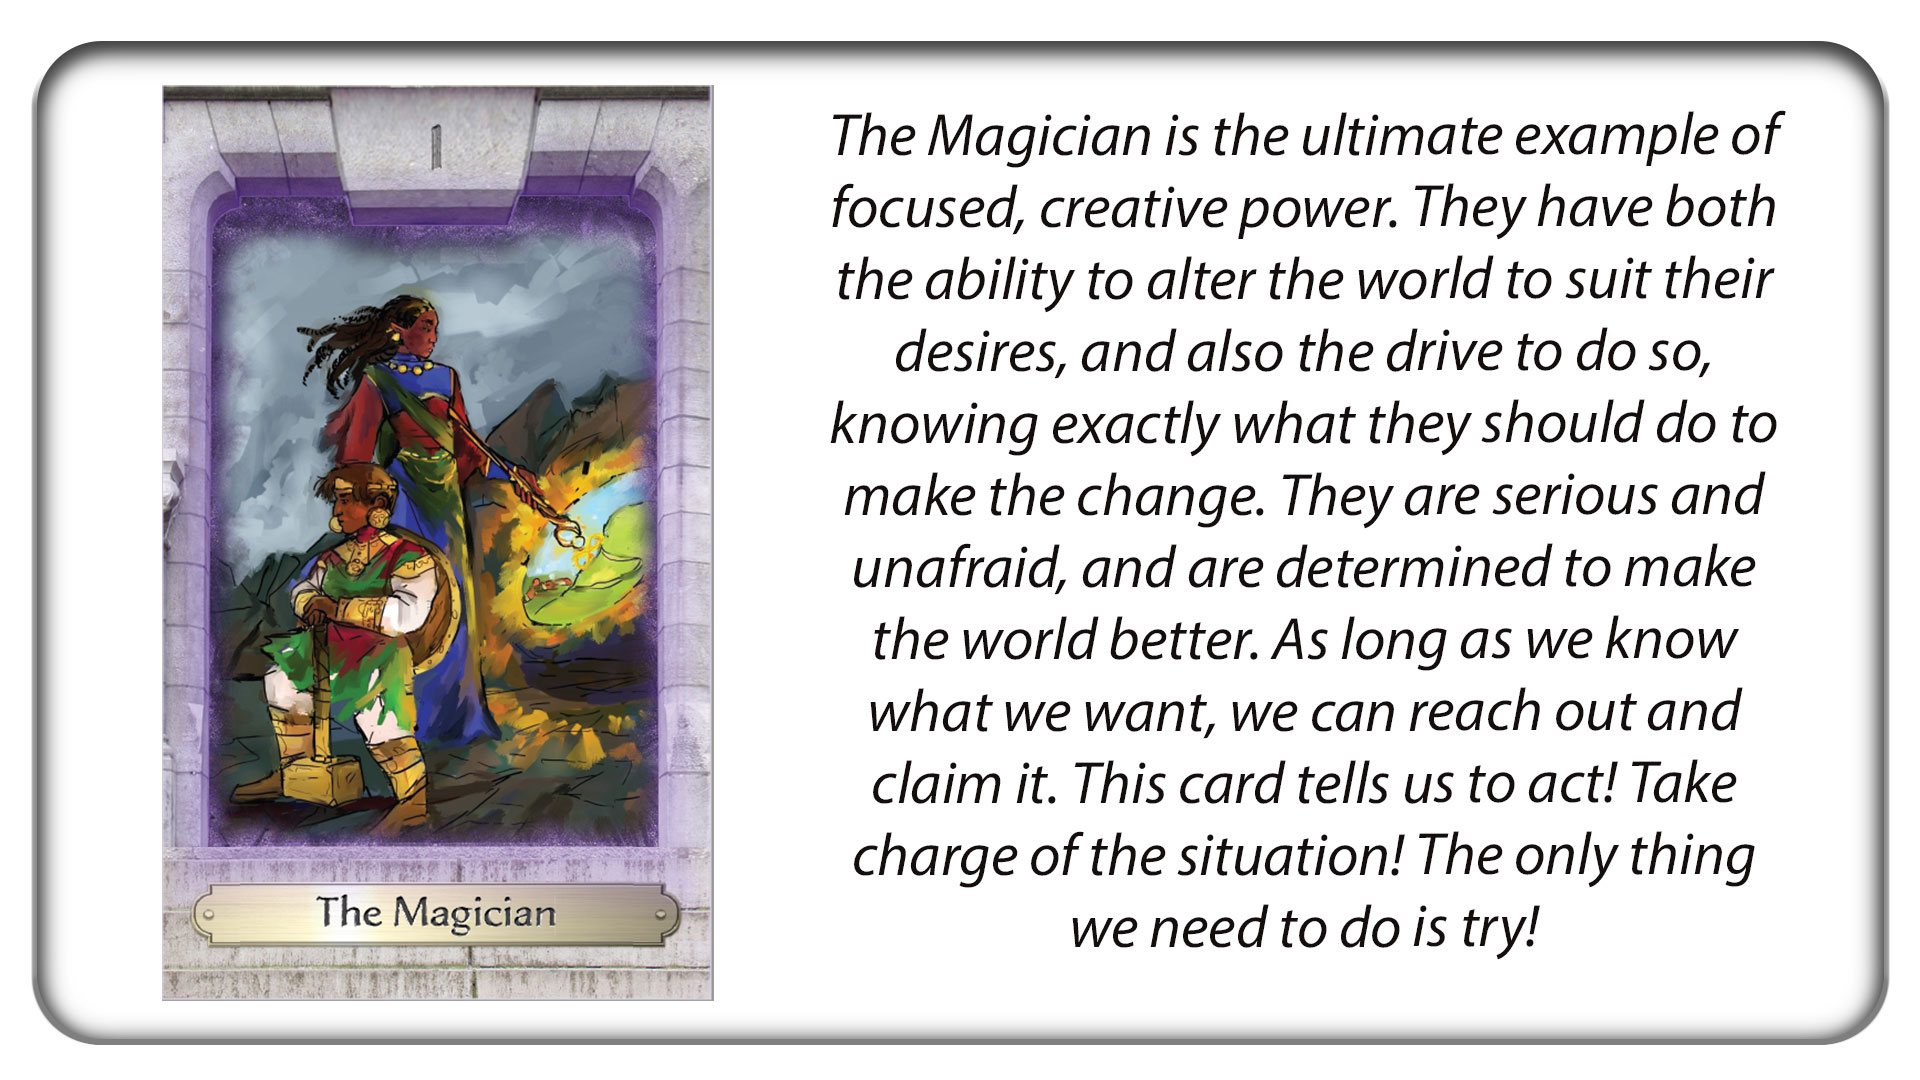 The Magician: Ultimate creative power.